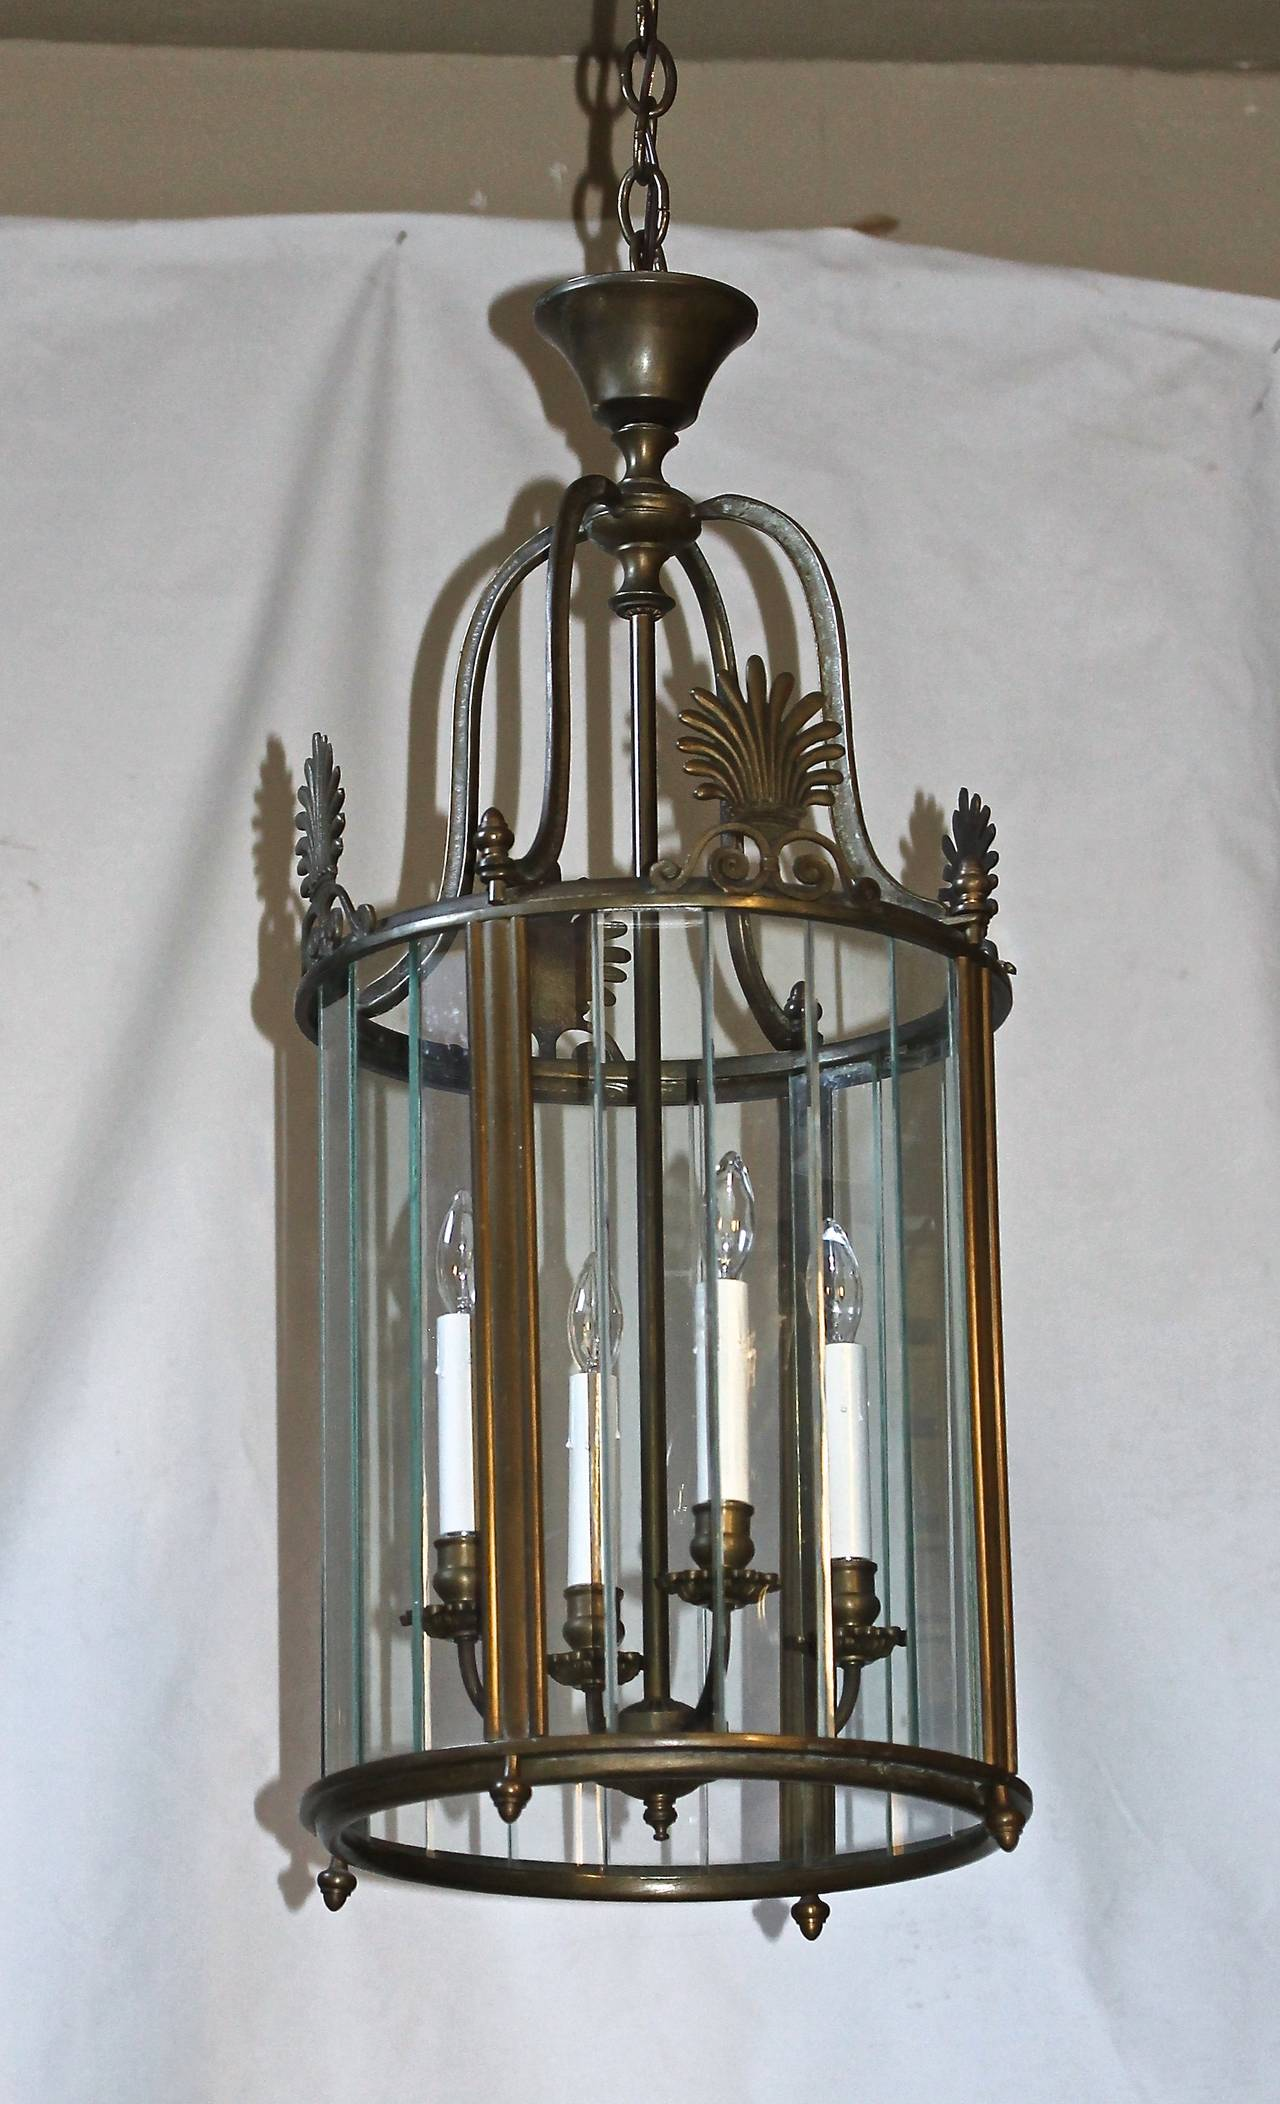 "Large Italian Neoclassic heavy solid bronze or brass hall or entry lantern with segmented glass panels and four lights. Uses 4 - 40 watt candelabra base bulbs, newly wired. Fixture size 14"" D x 30"" T, overall height including chain"